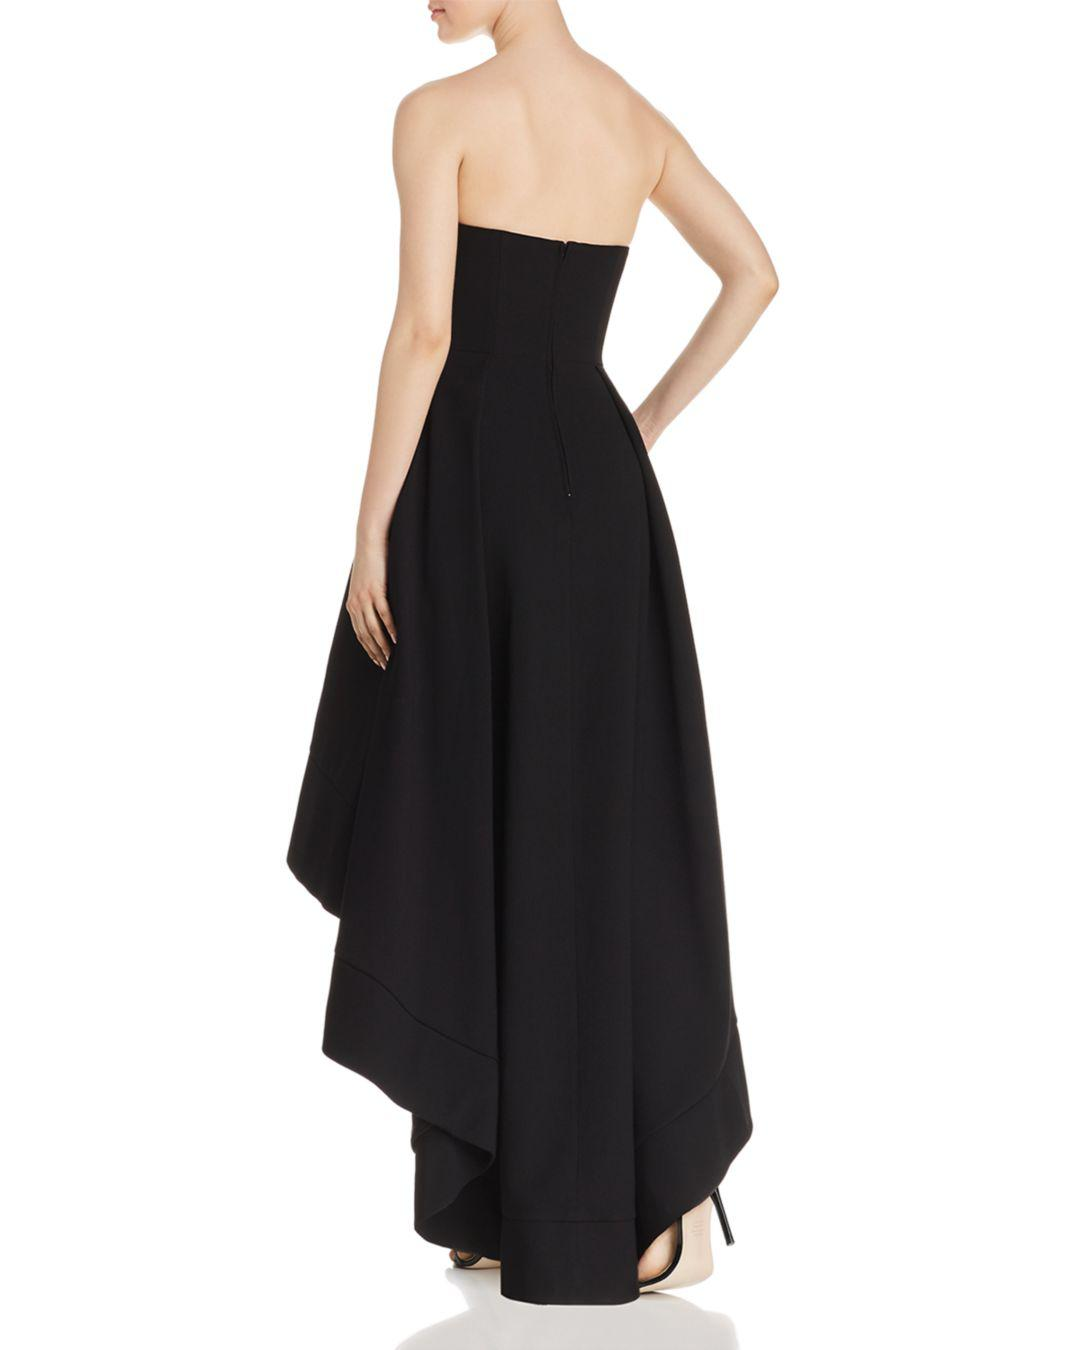 fc8010c7196c Lyst - C meo Collective Entice Strapless Gown in Black